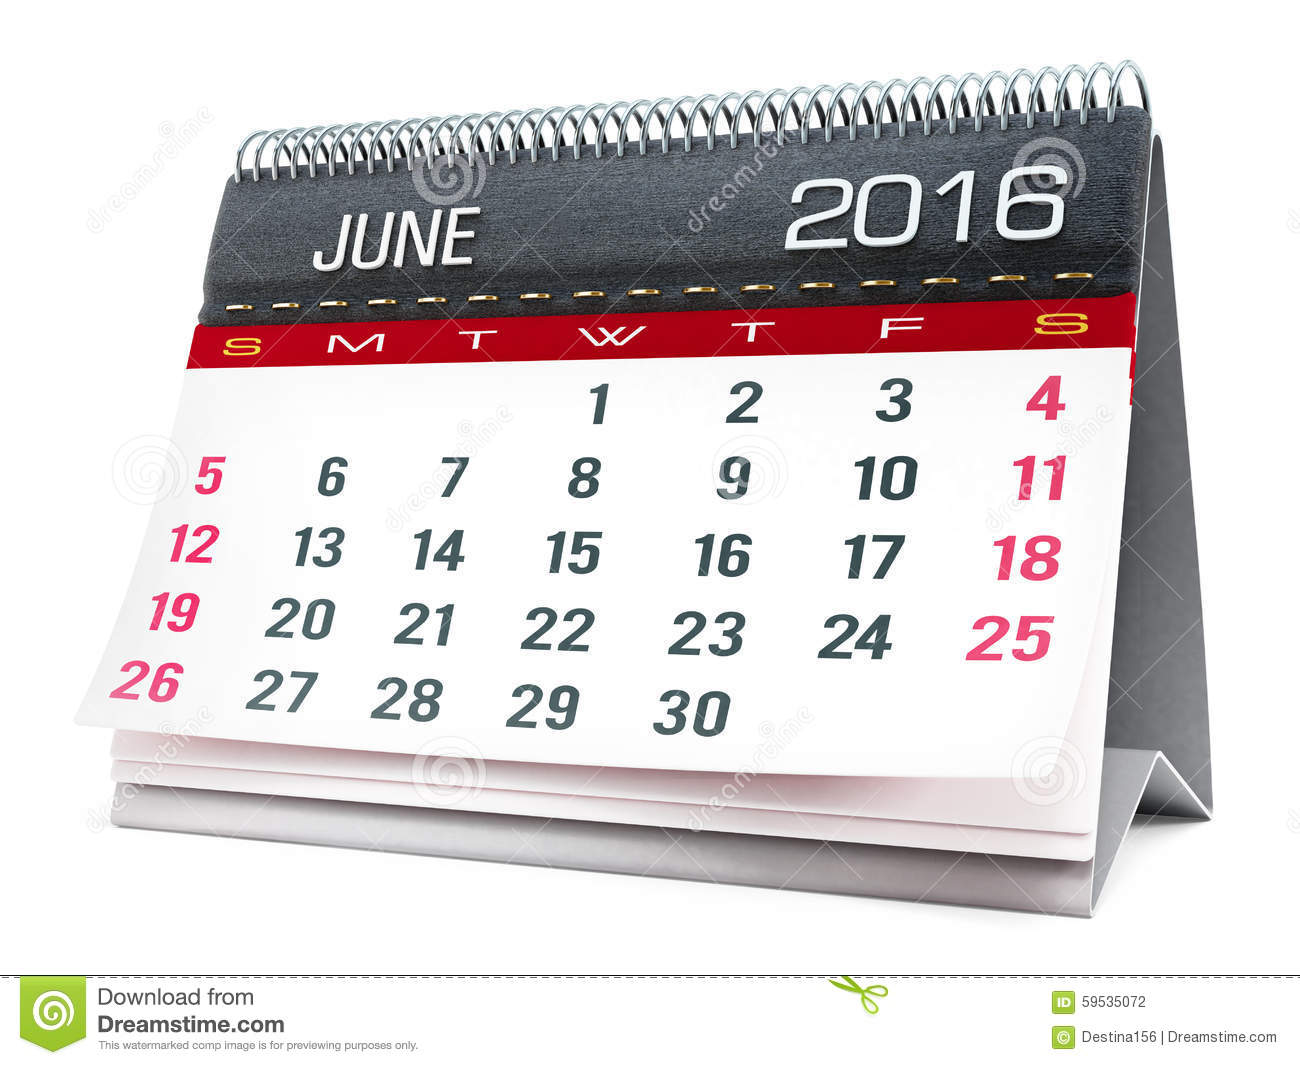 calendar clipart june calendar template 2016. Black Bedroom Furniture Sets. Home Design Ideas